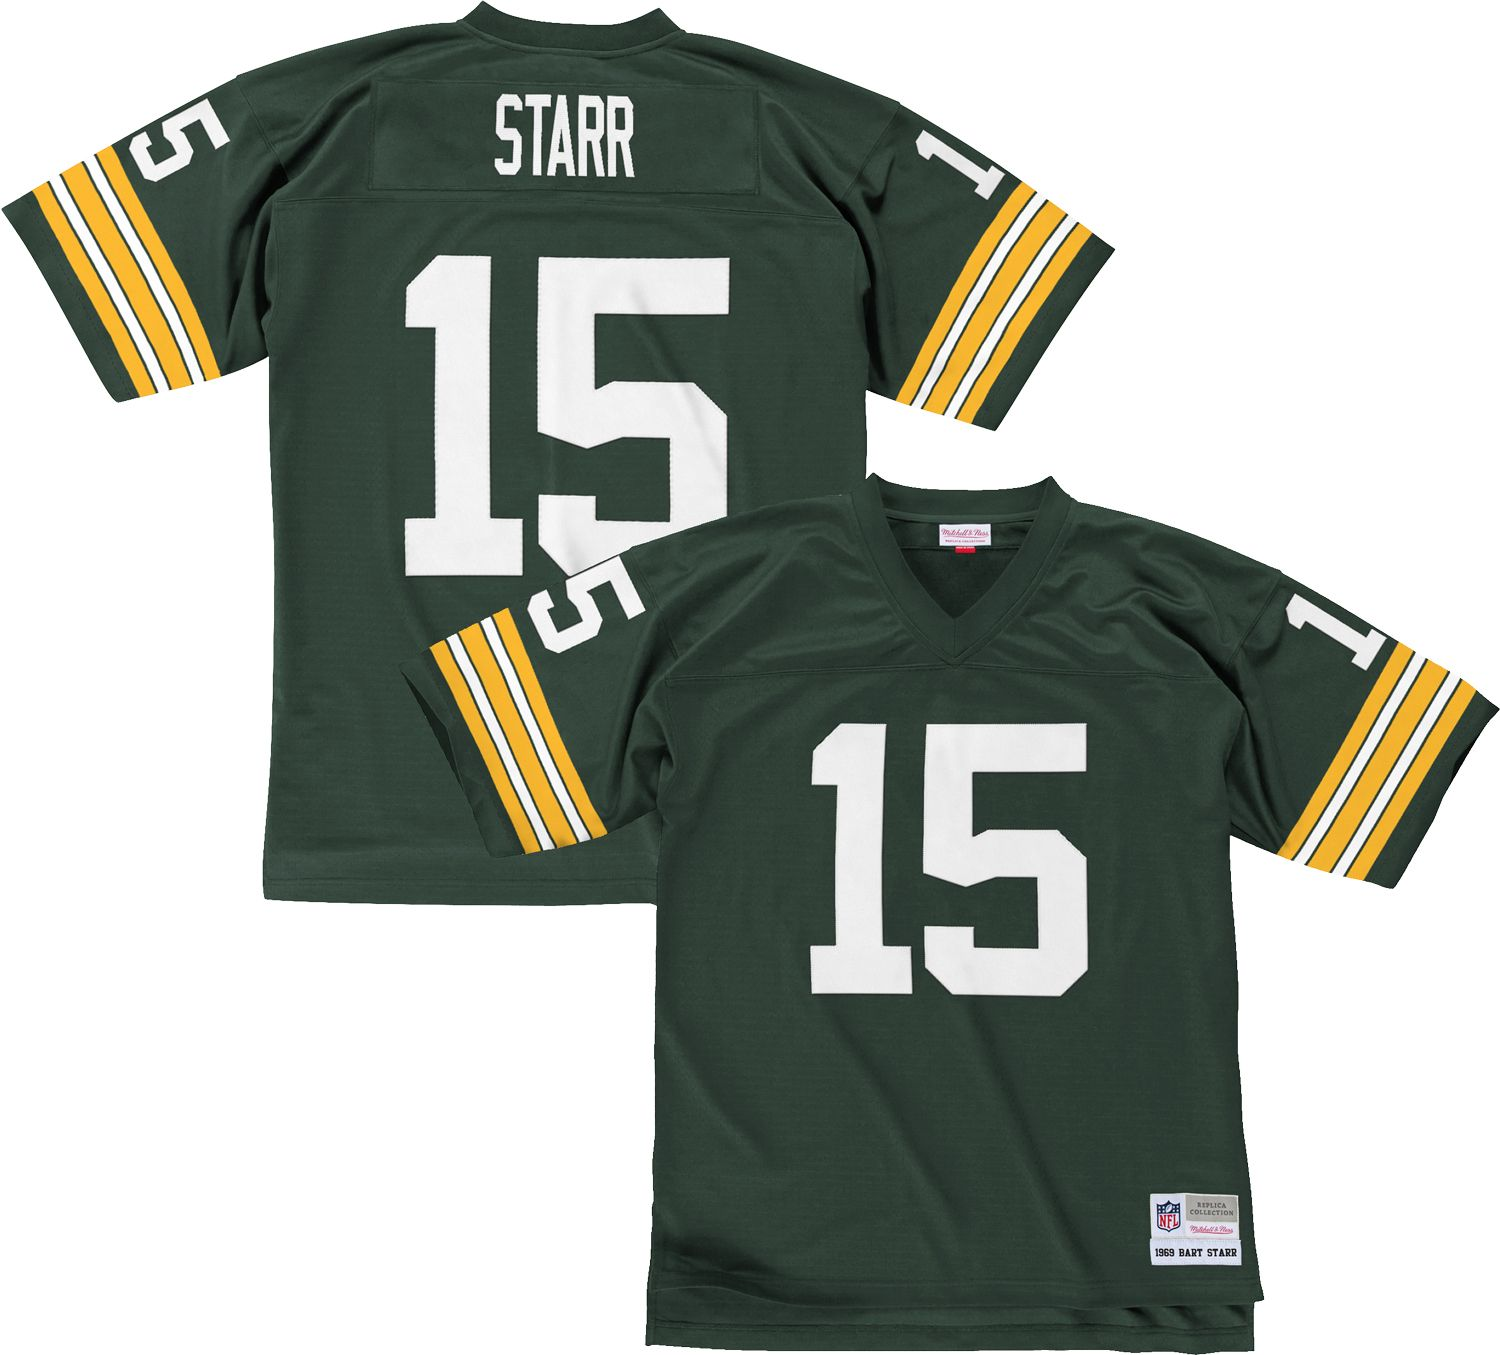 quality design 9b91c 71c30 bart starr jersey for sale